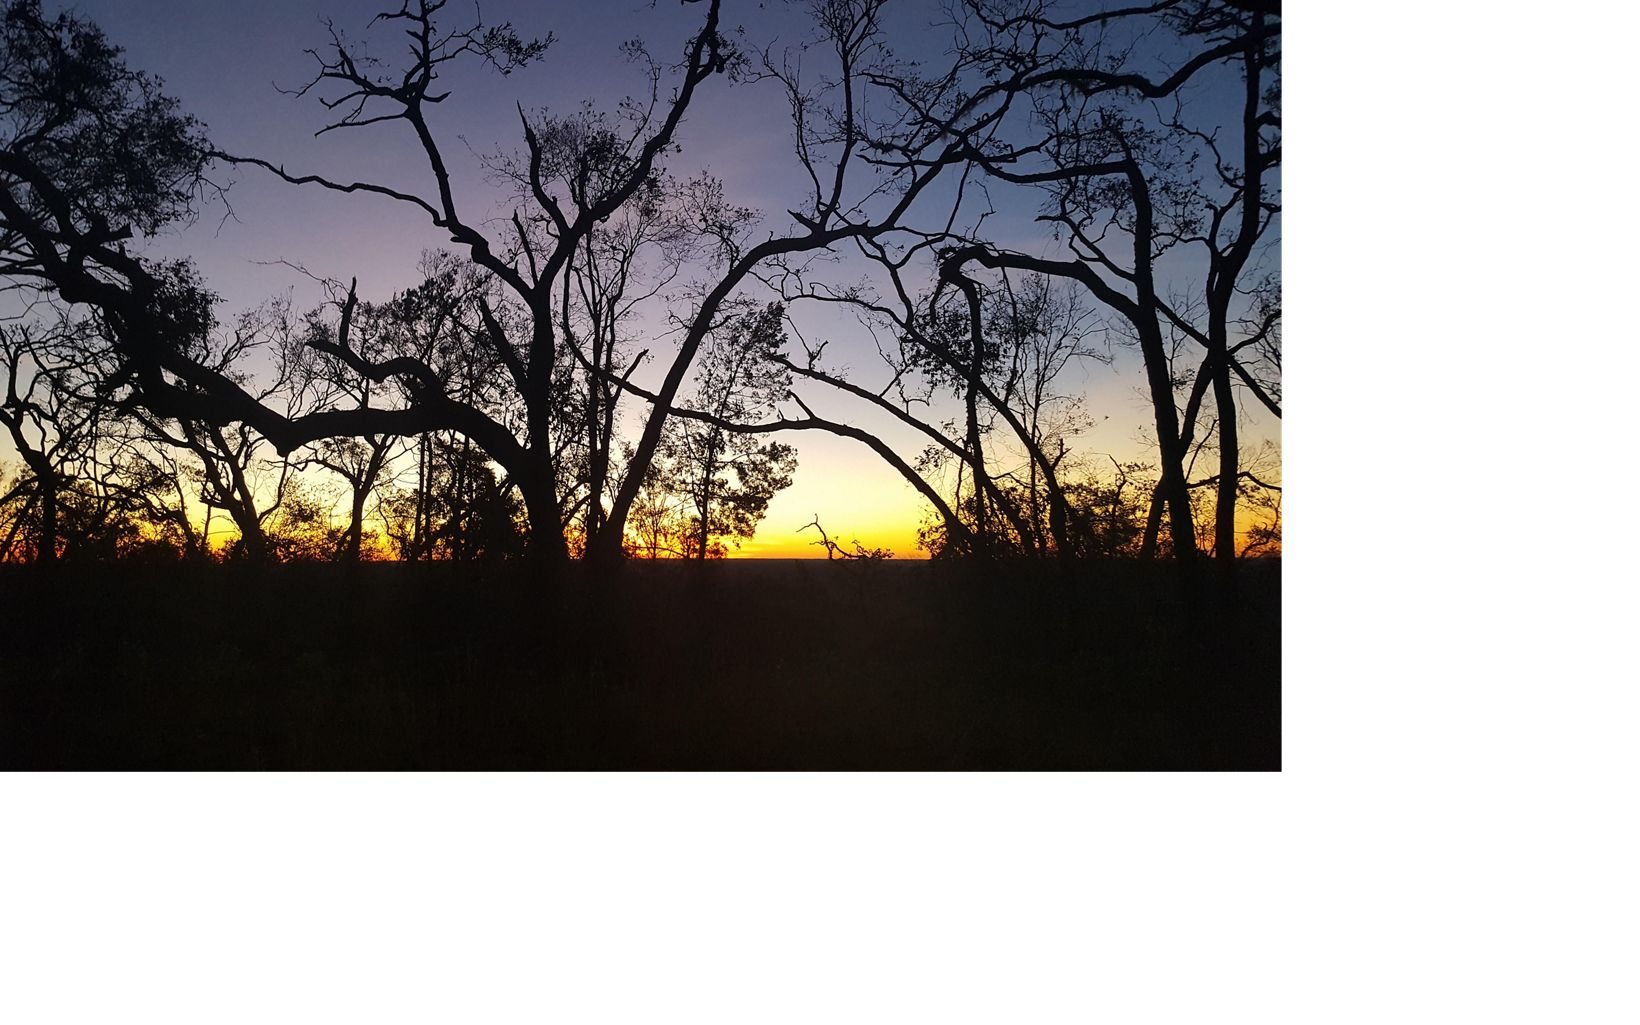 Live Oak Trees at Dusk